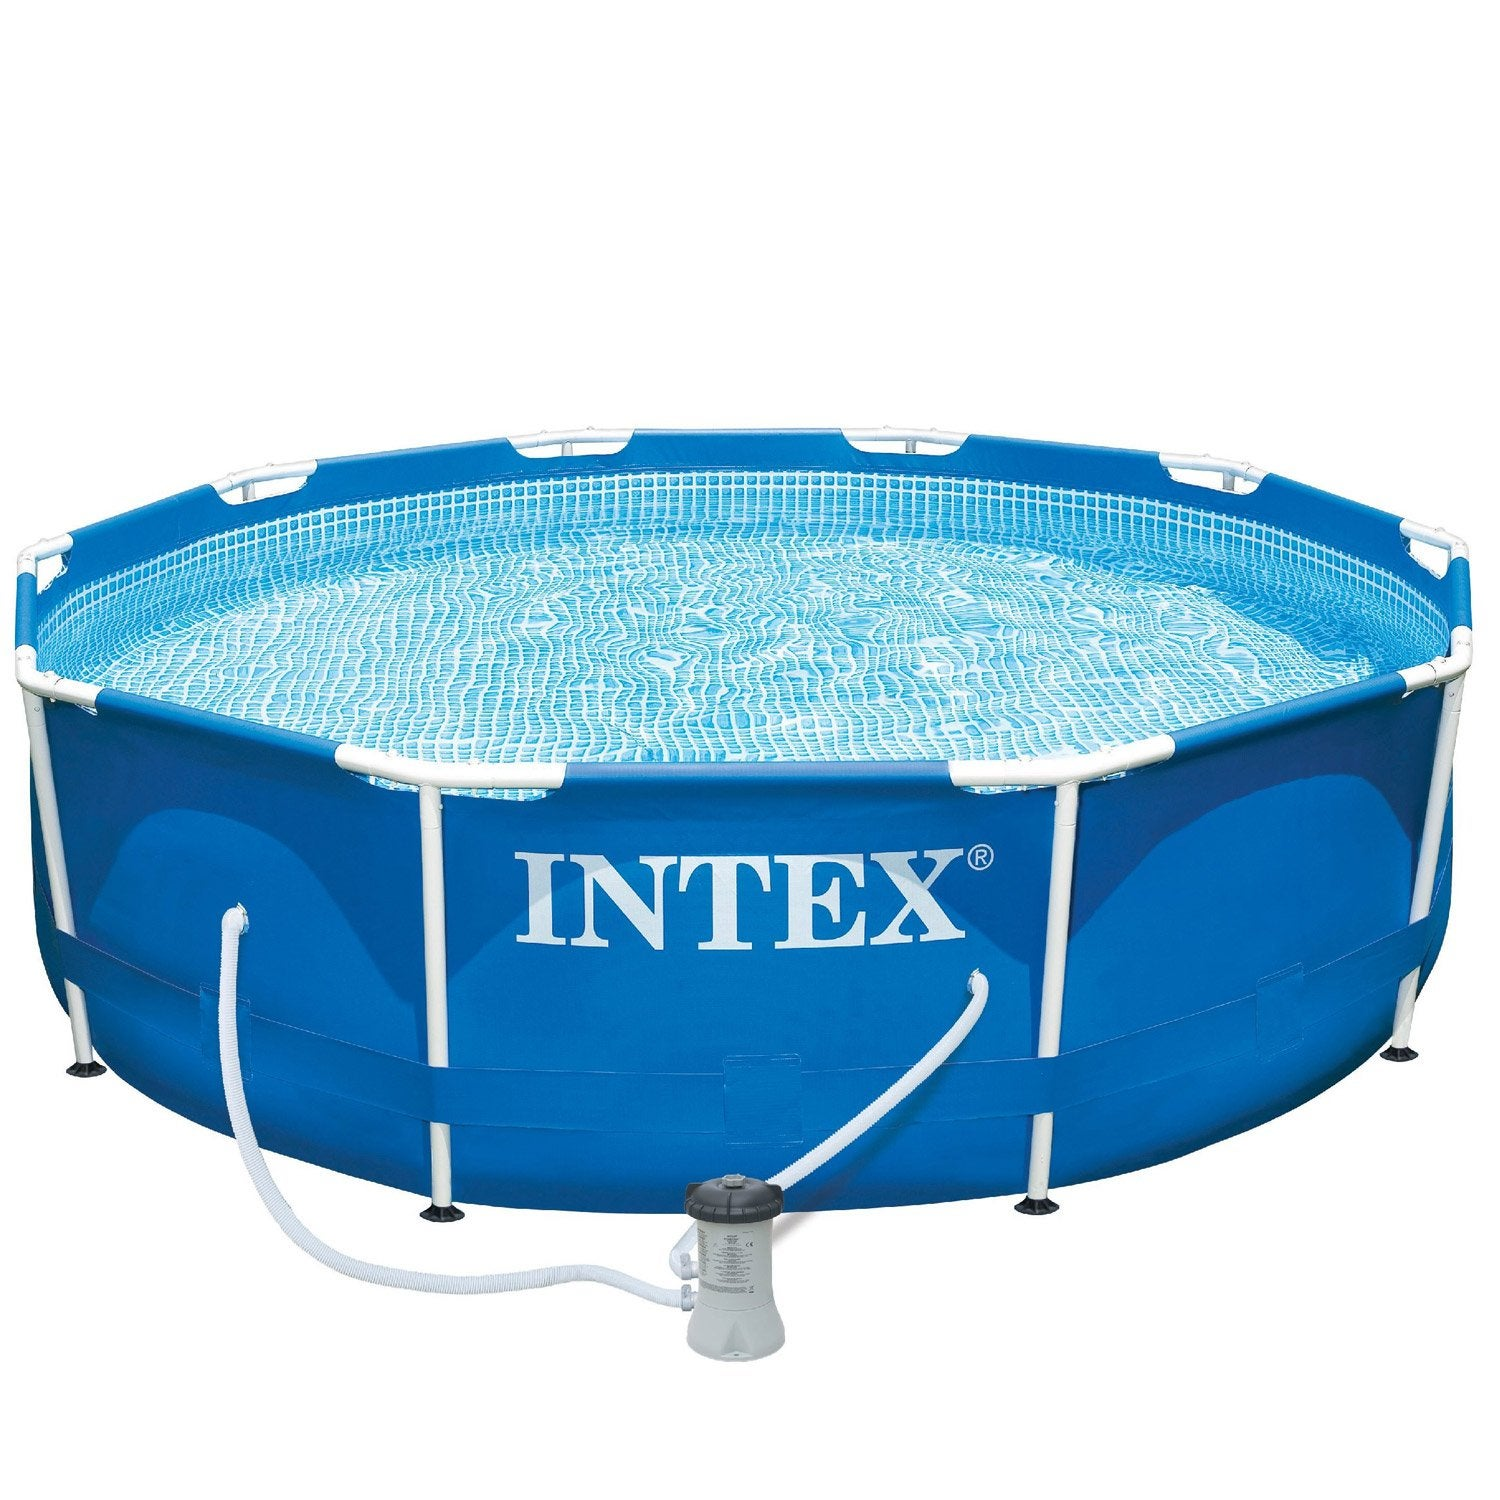 Piscine hors sol autoportante tubulaire metal frame intex for Piscine hors sol 1m30